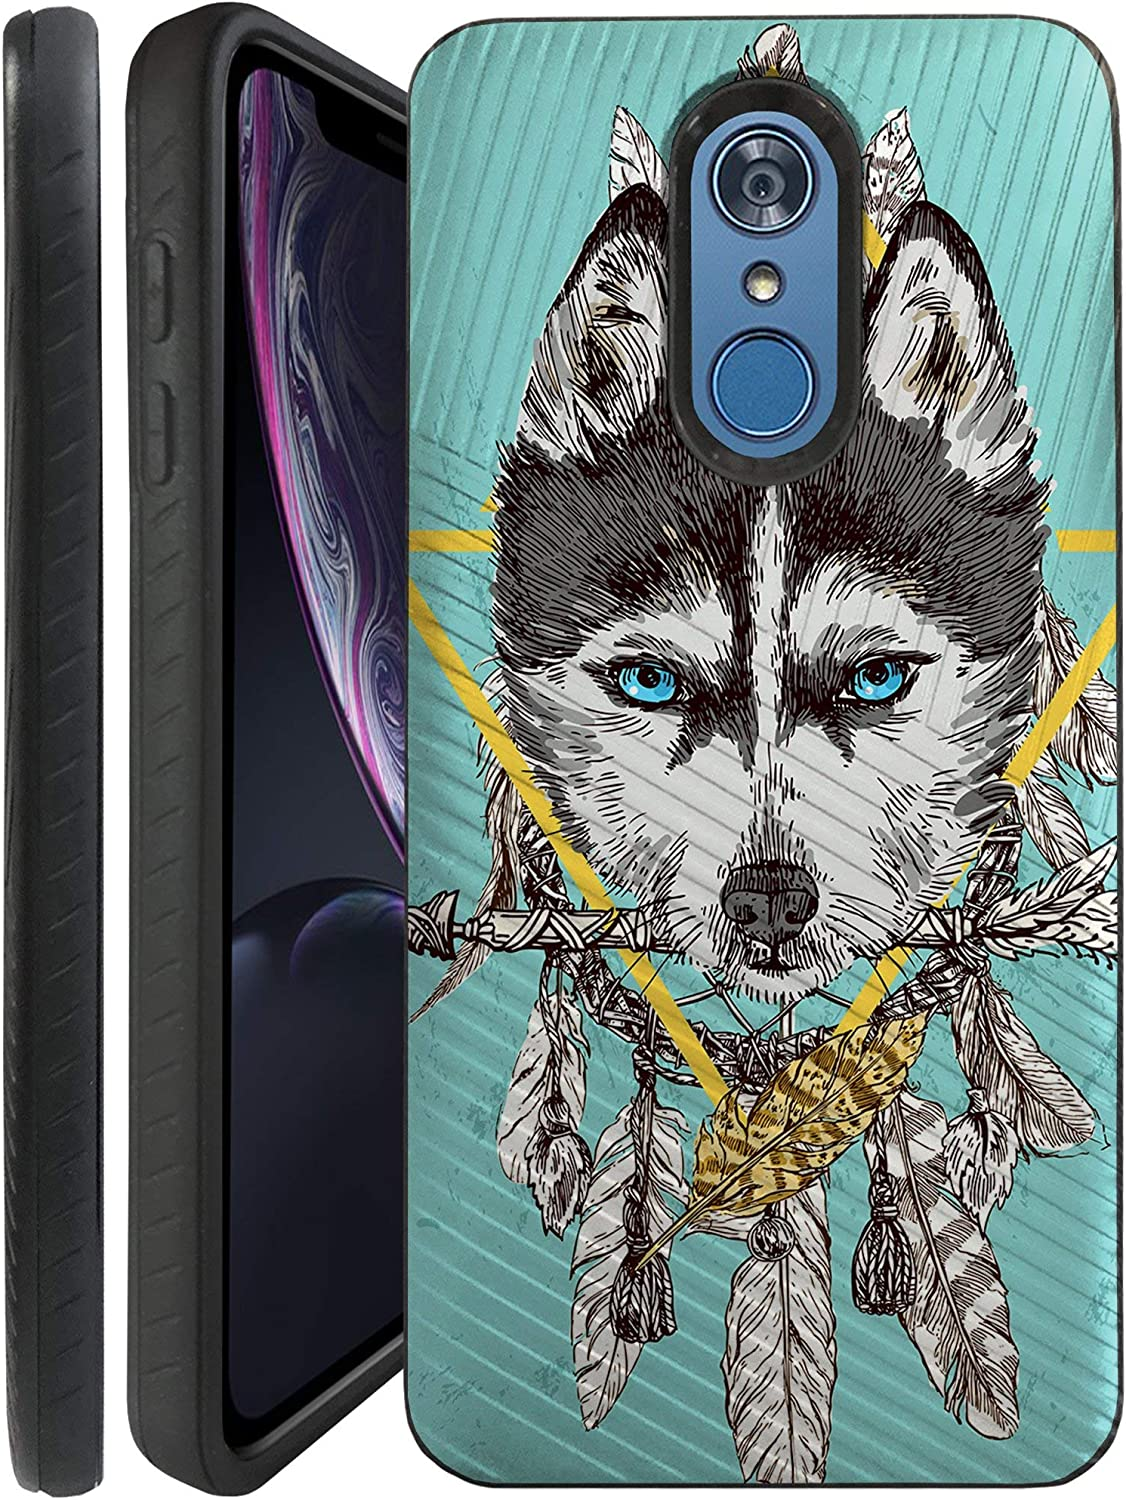 CasesOnDeck Case Compatible with [LG Q7, LG Q7+, LG Q7 Plus] Textured Tribal Floral Designs On Dual Layer Embossed Slim Cover (Teal Wolf)